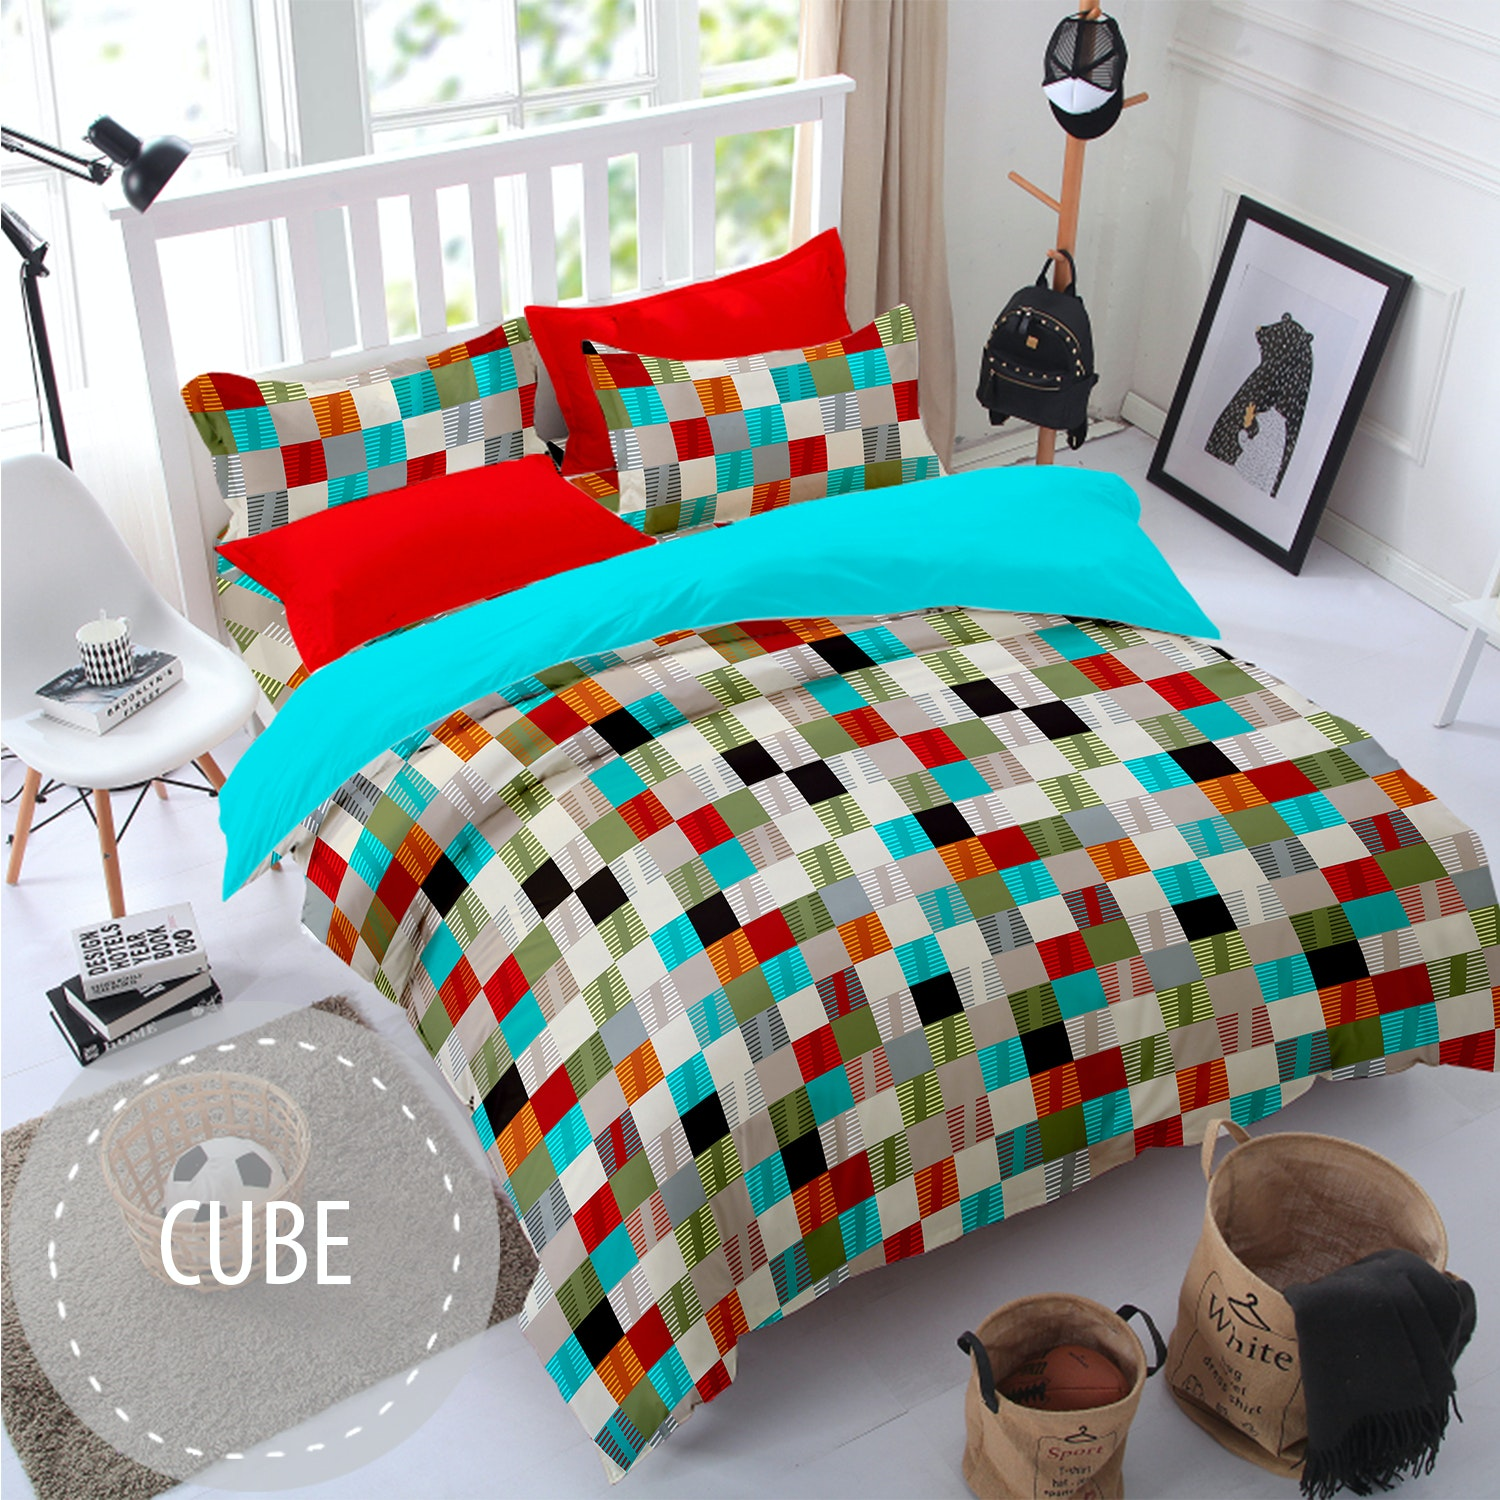 Pesona Sprei Disperse Cube uk 160 T 20